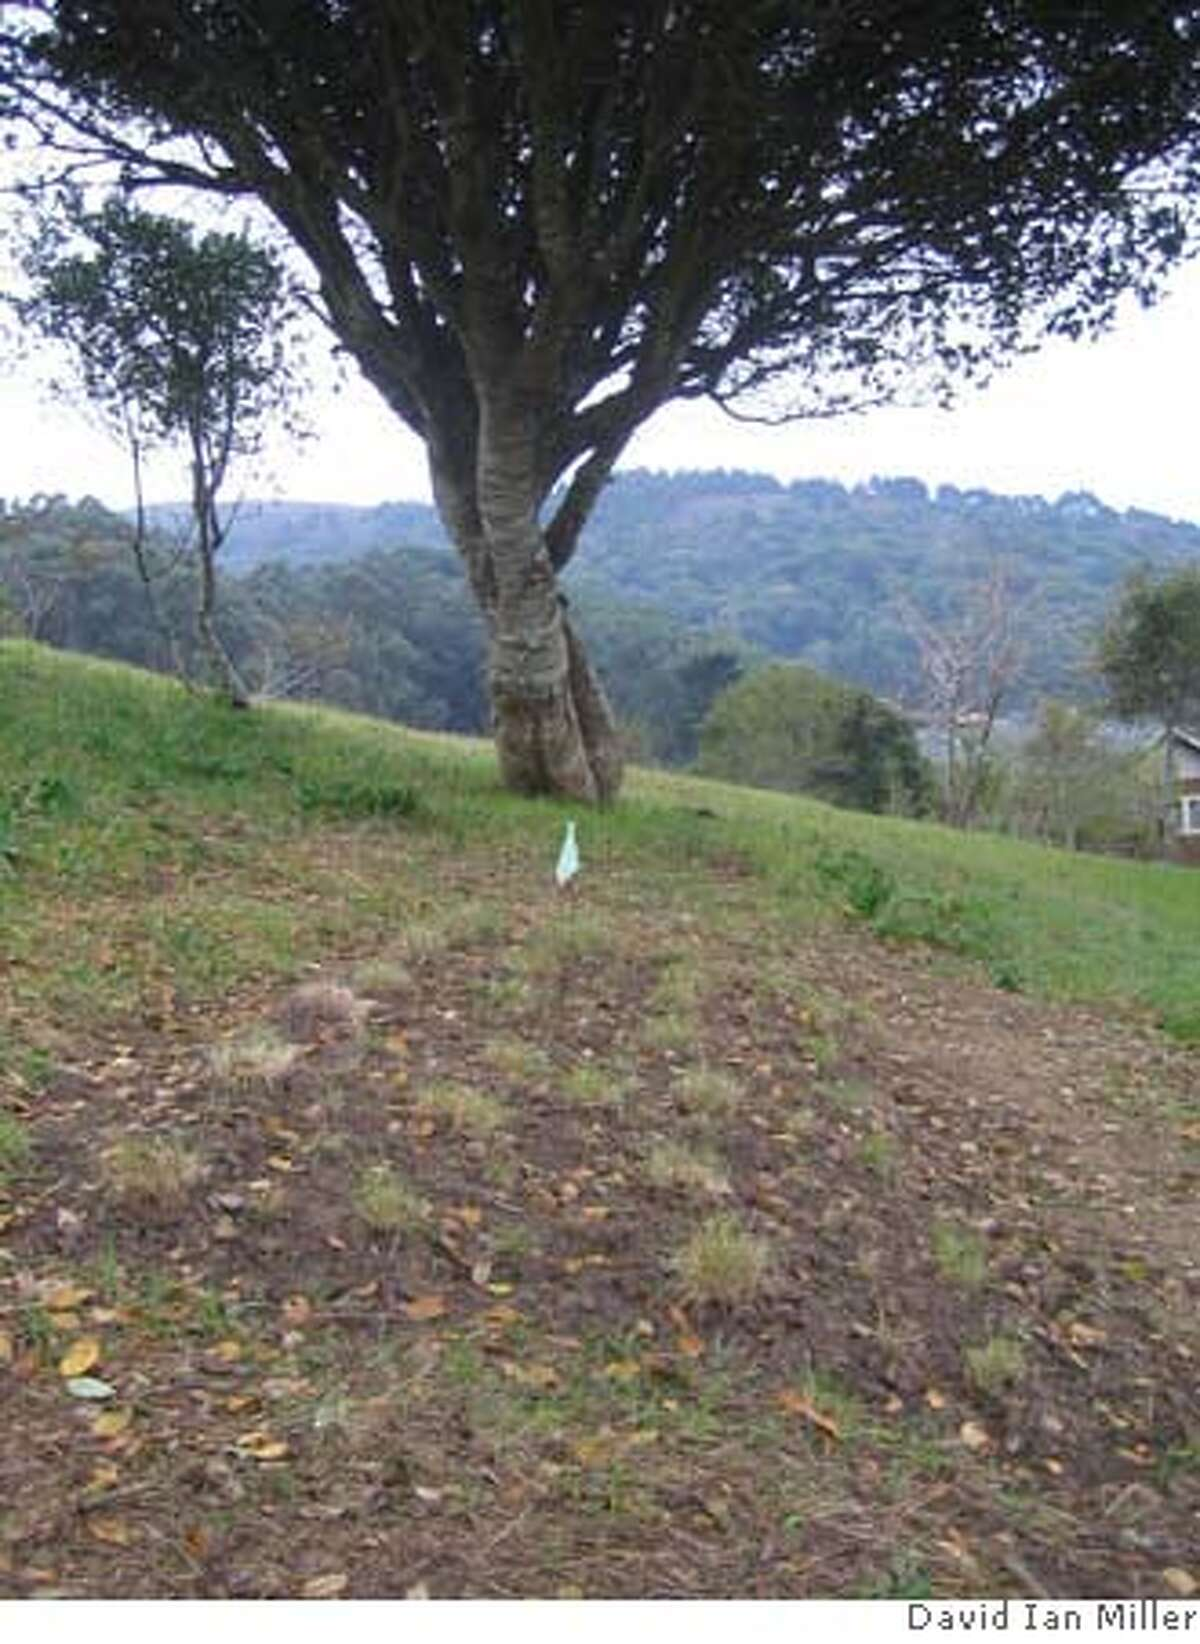 #2 - A green gravesite at Fernwood cemetery in Mill Valley.